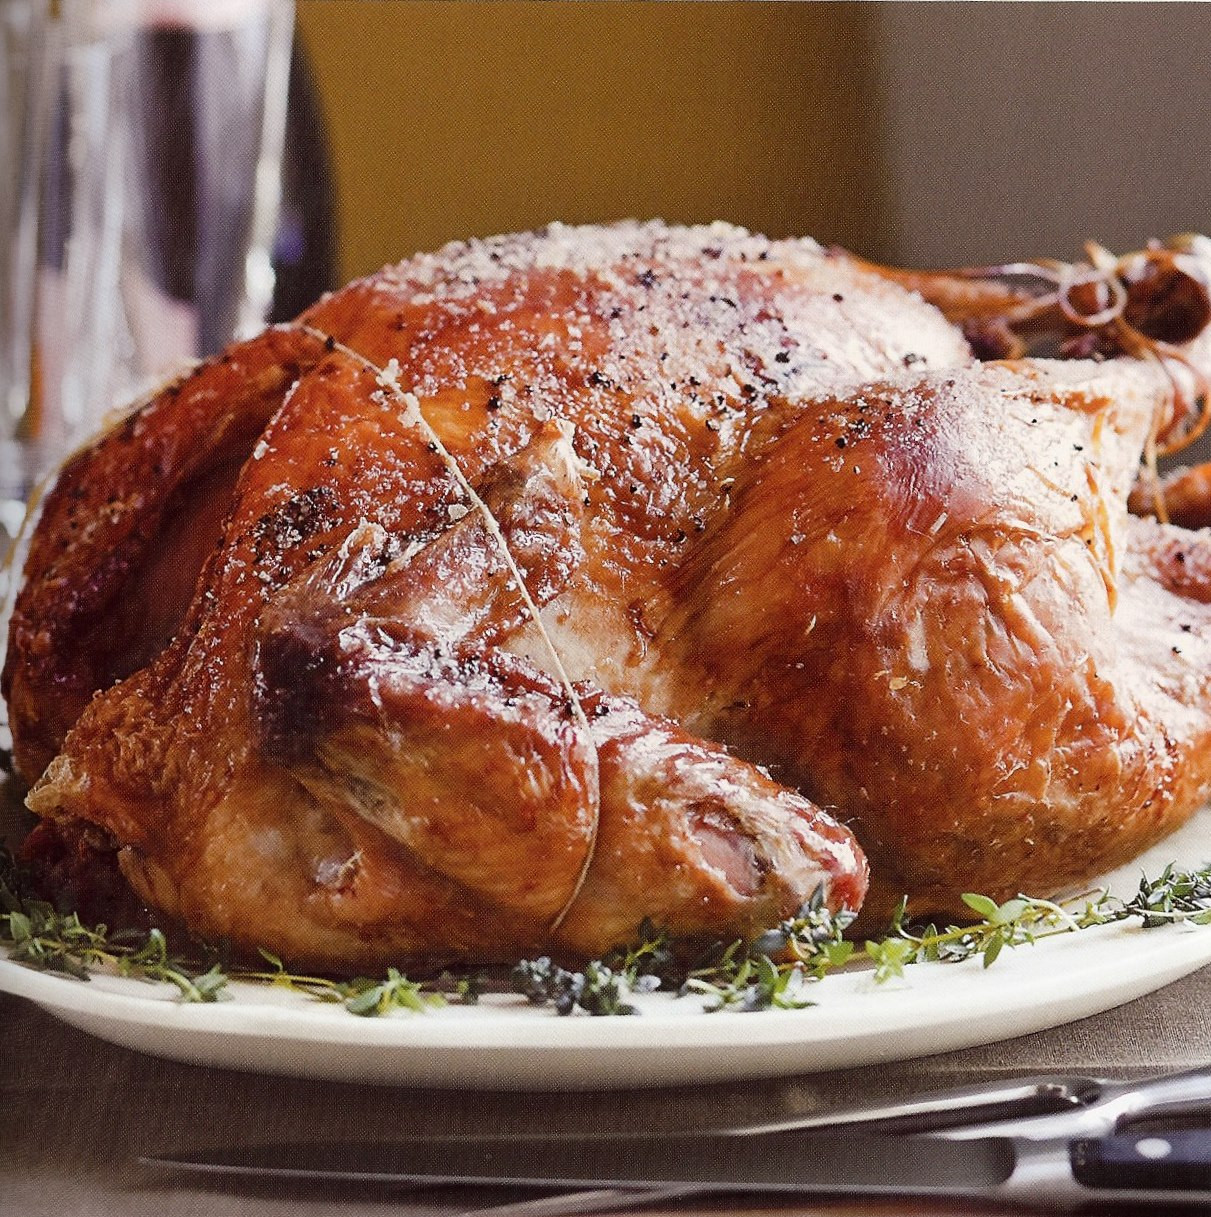 Ina Garten Thanksgiving Turkey  Circa Ina Garten s new cookbook just in time for